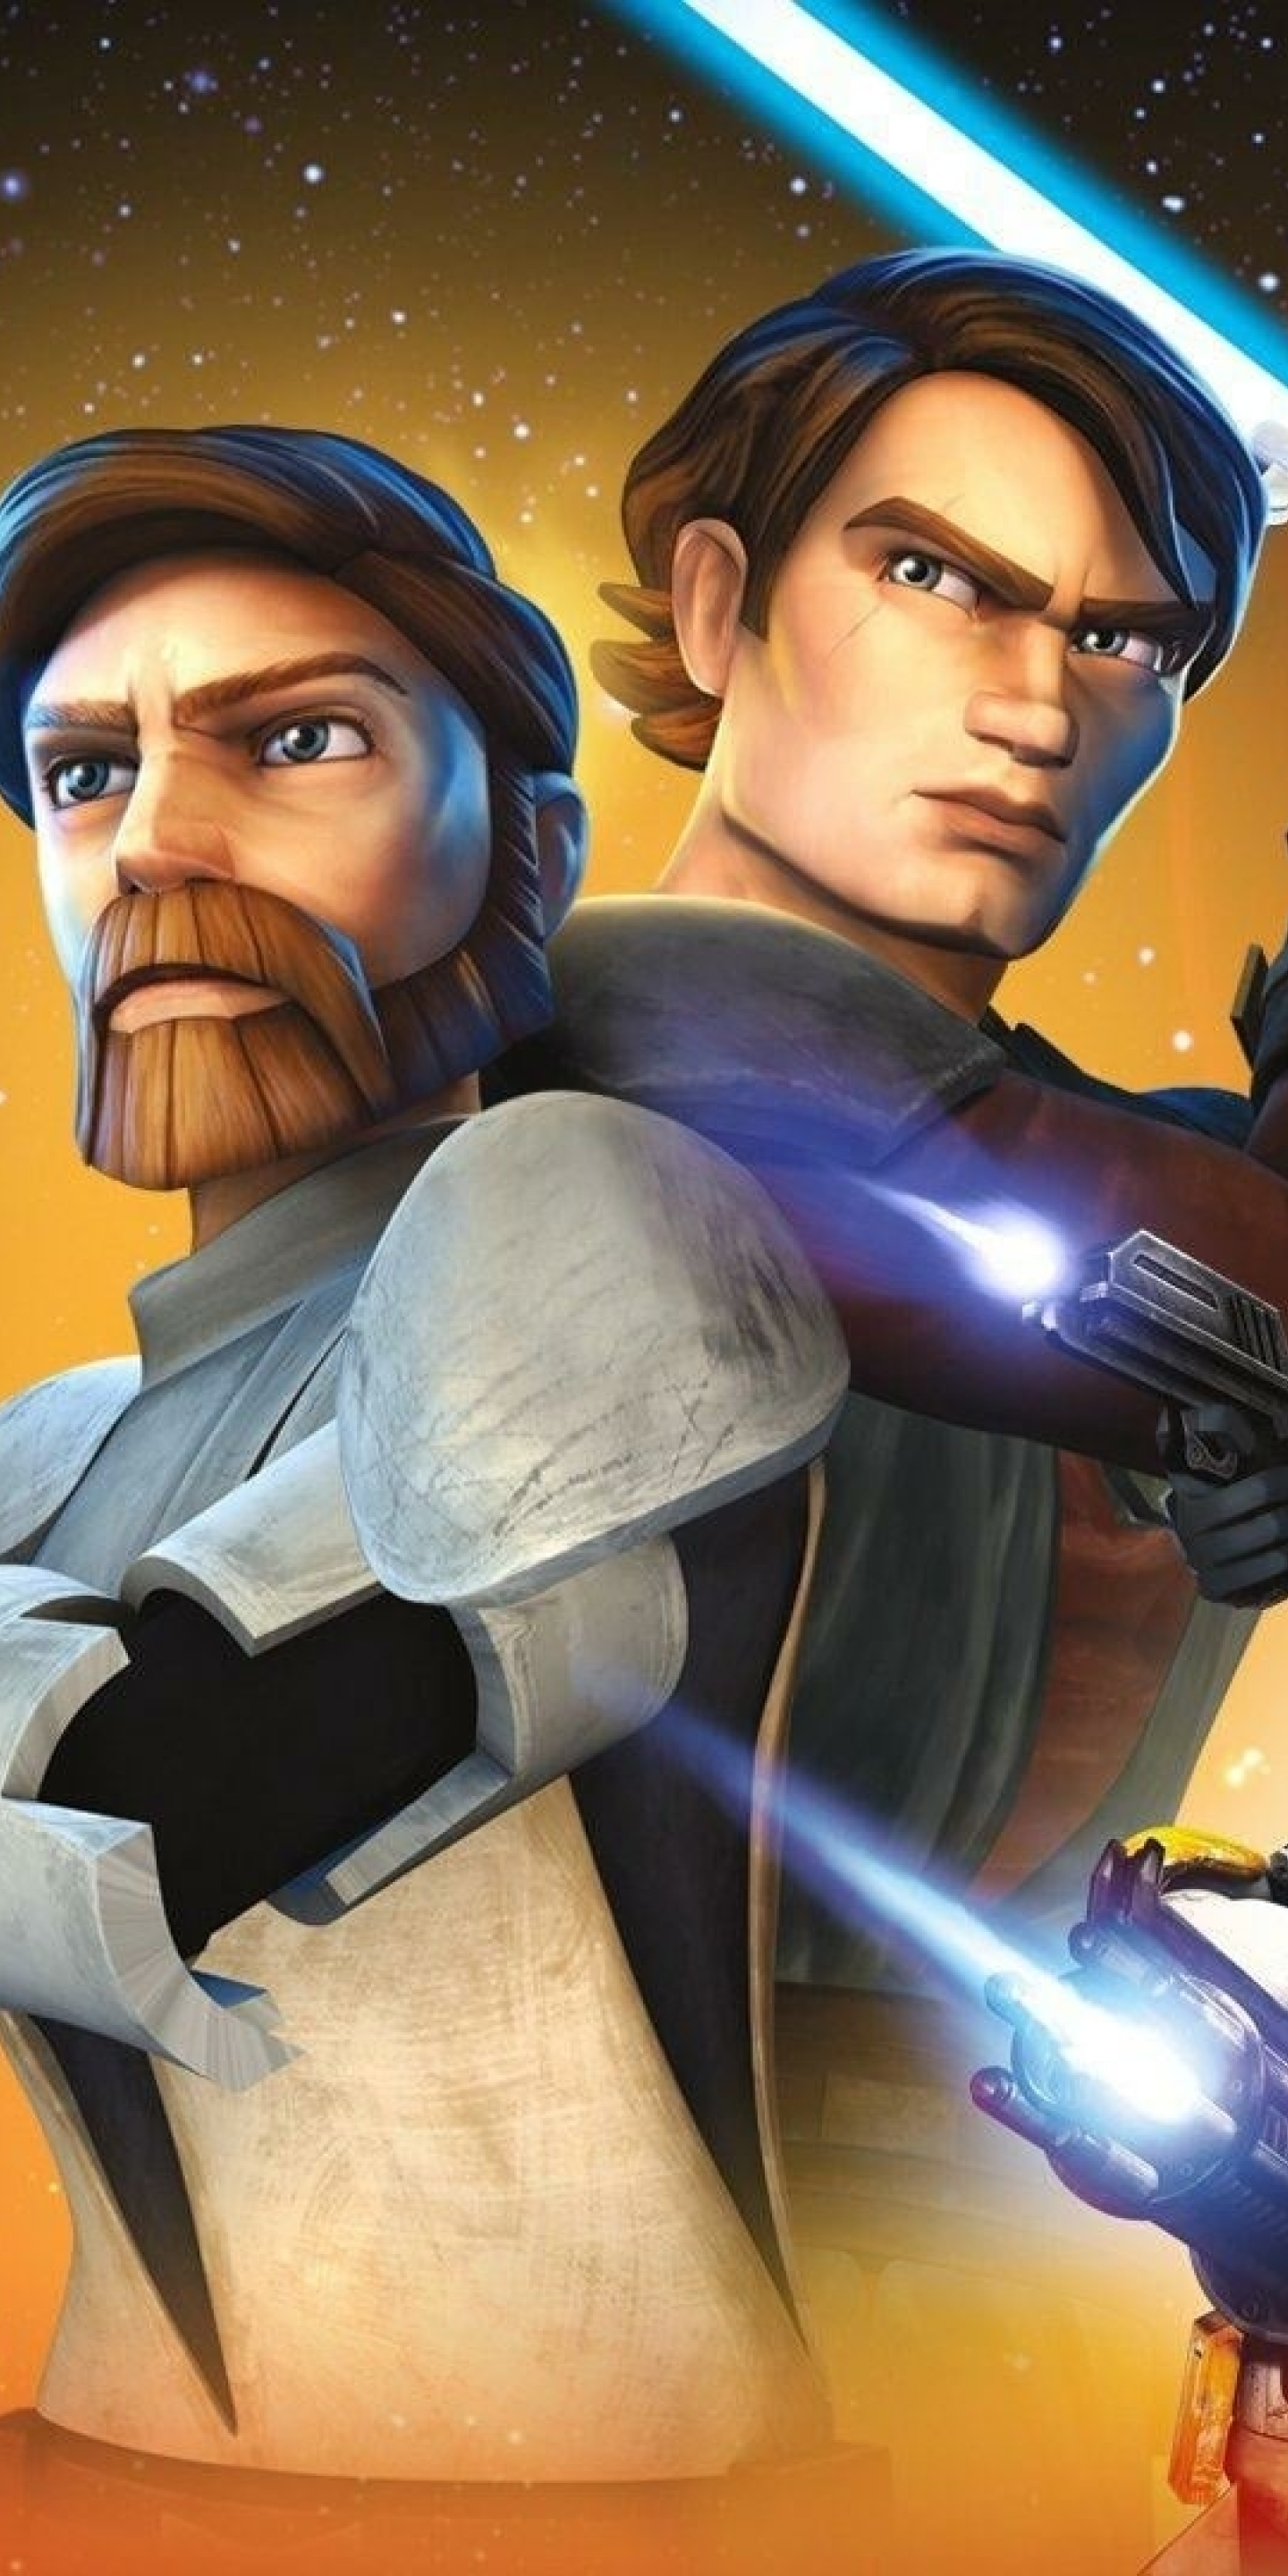 1440x2880 Star Wars The Clone Wars Season 7 1440x2880 Resolution Wallpaper Hd Tv Series 4k Wallpapers Images Photos And Background